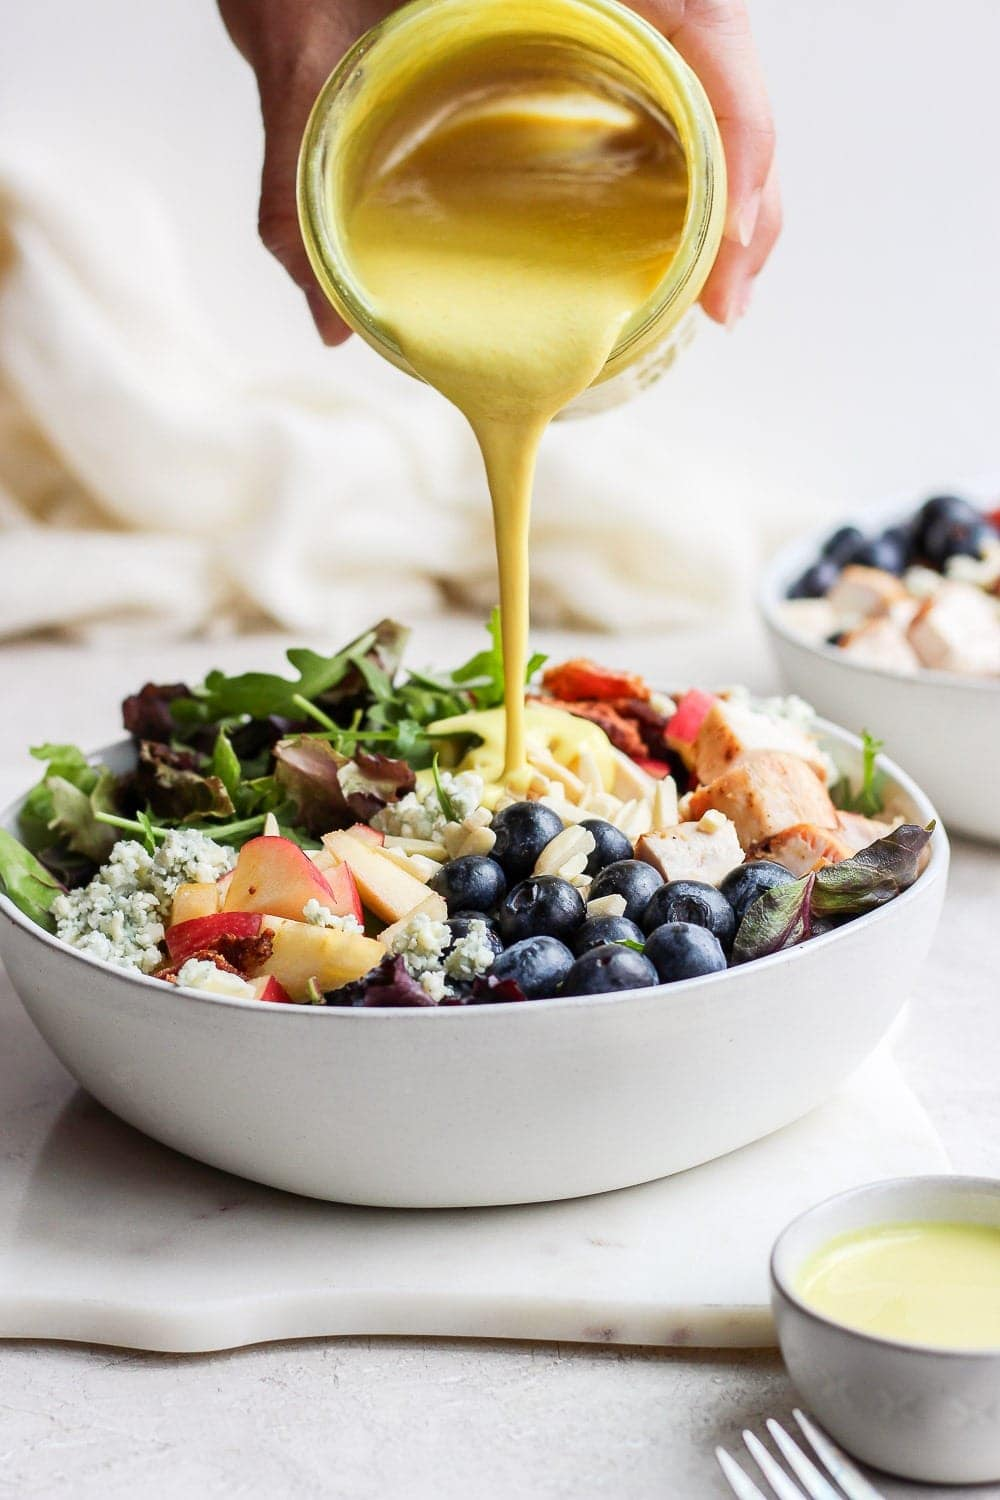 Pour the honey mustard sauce over the chicken salad in the bowl